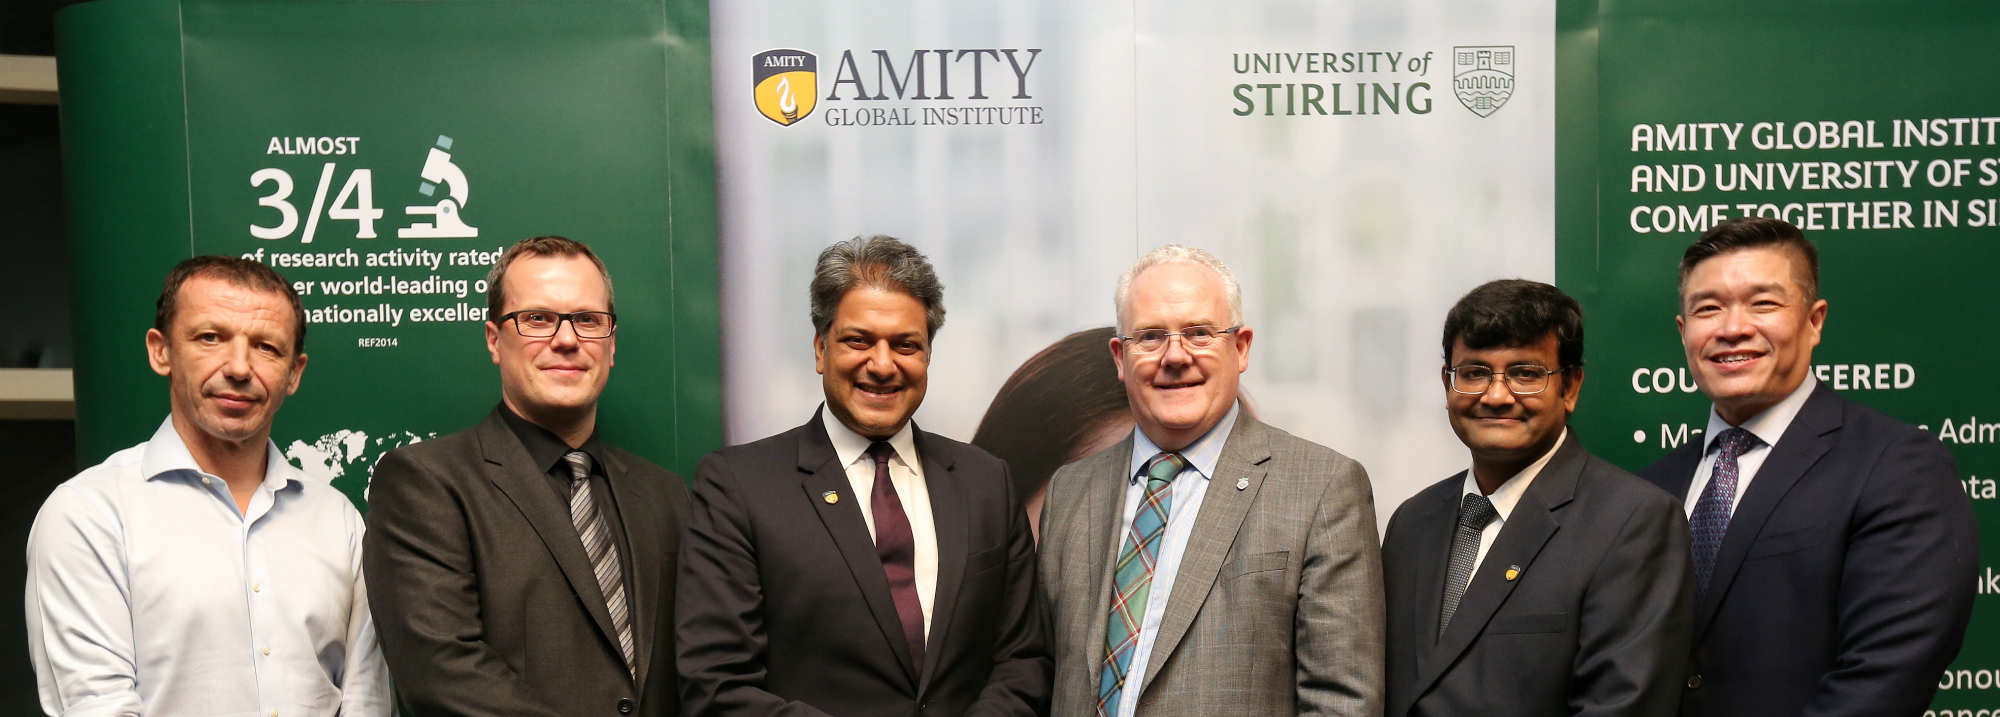 Partnership between University and Amity Global Institute announced